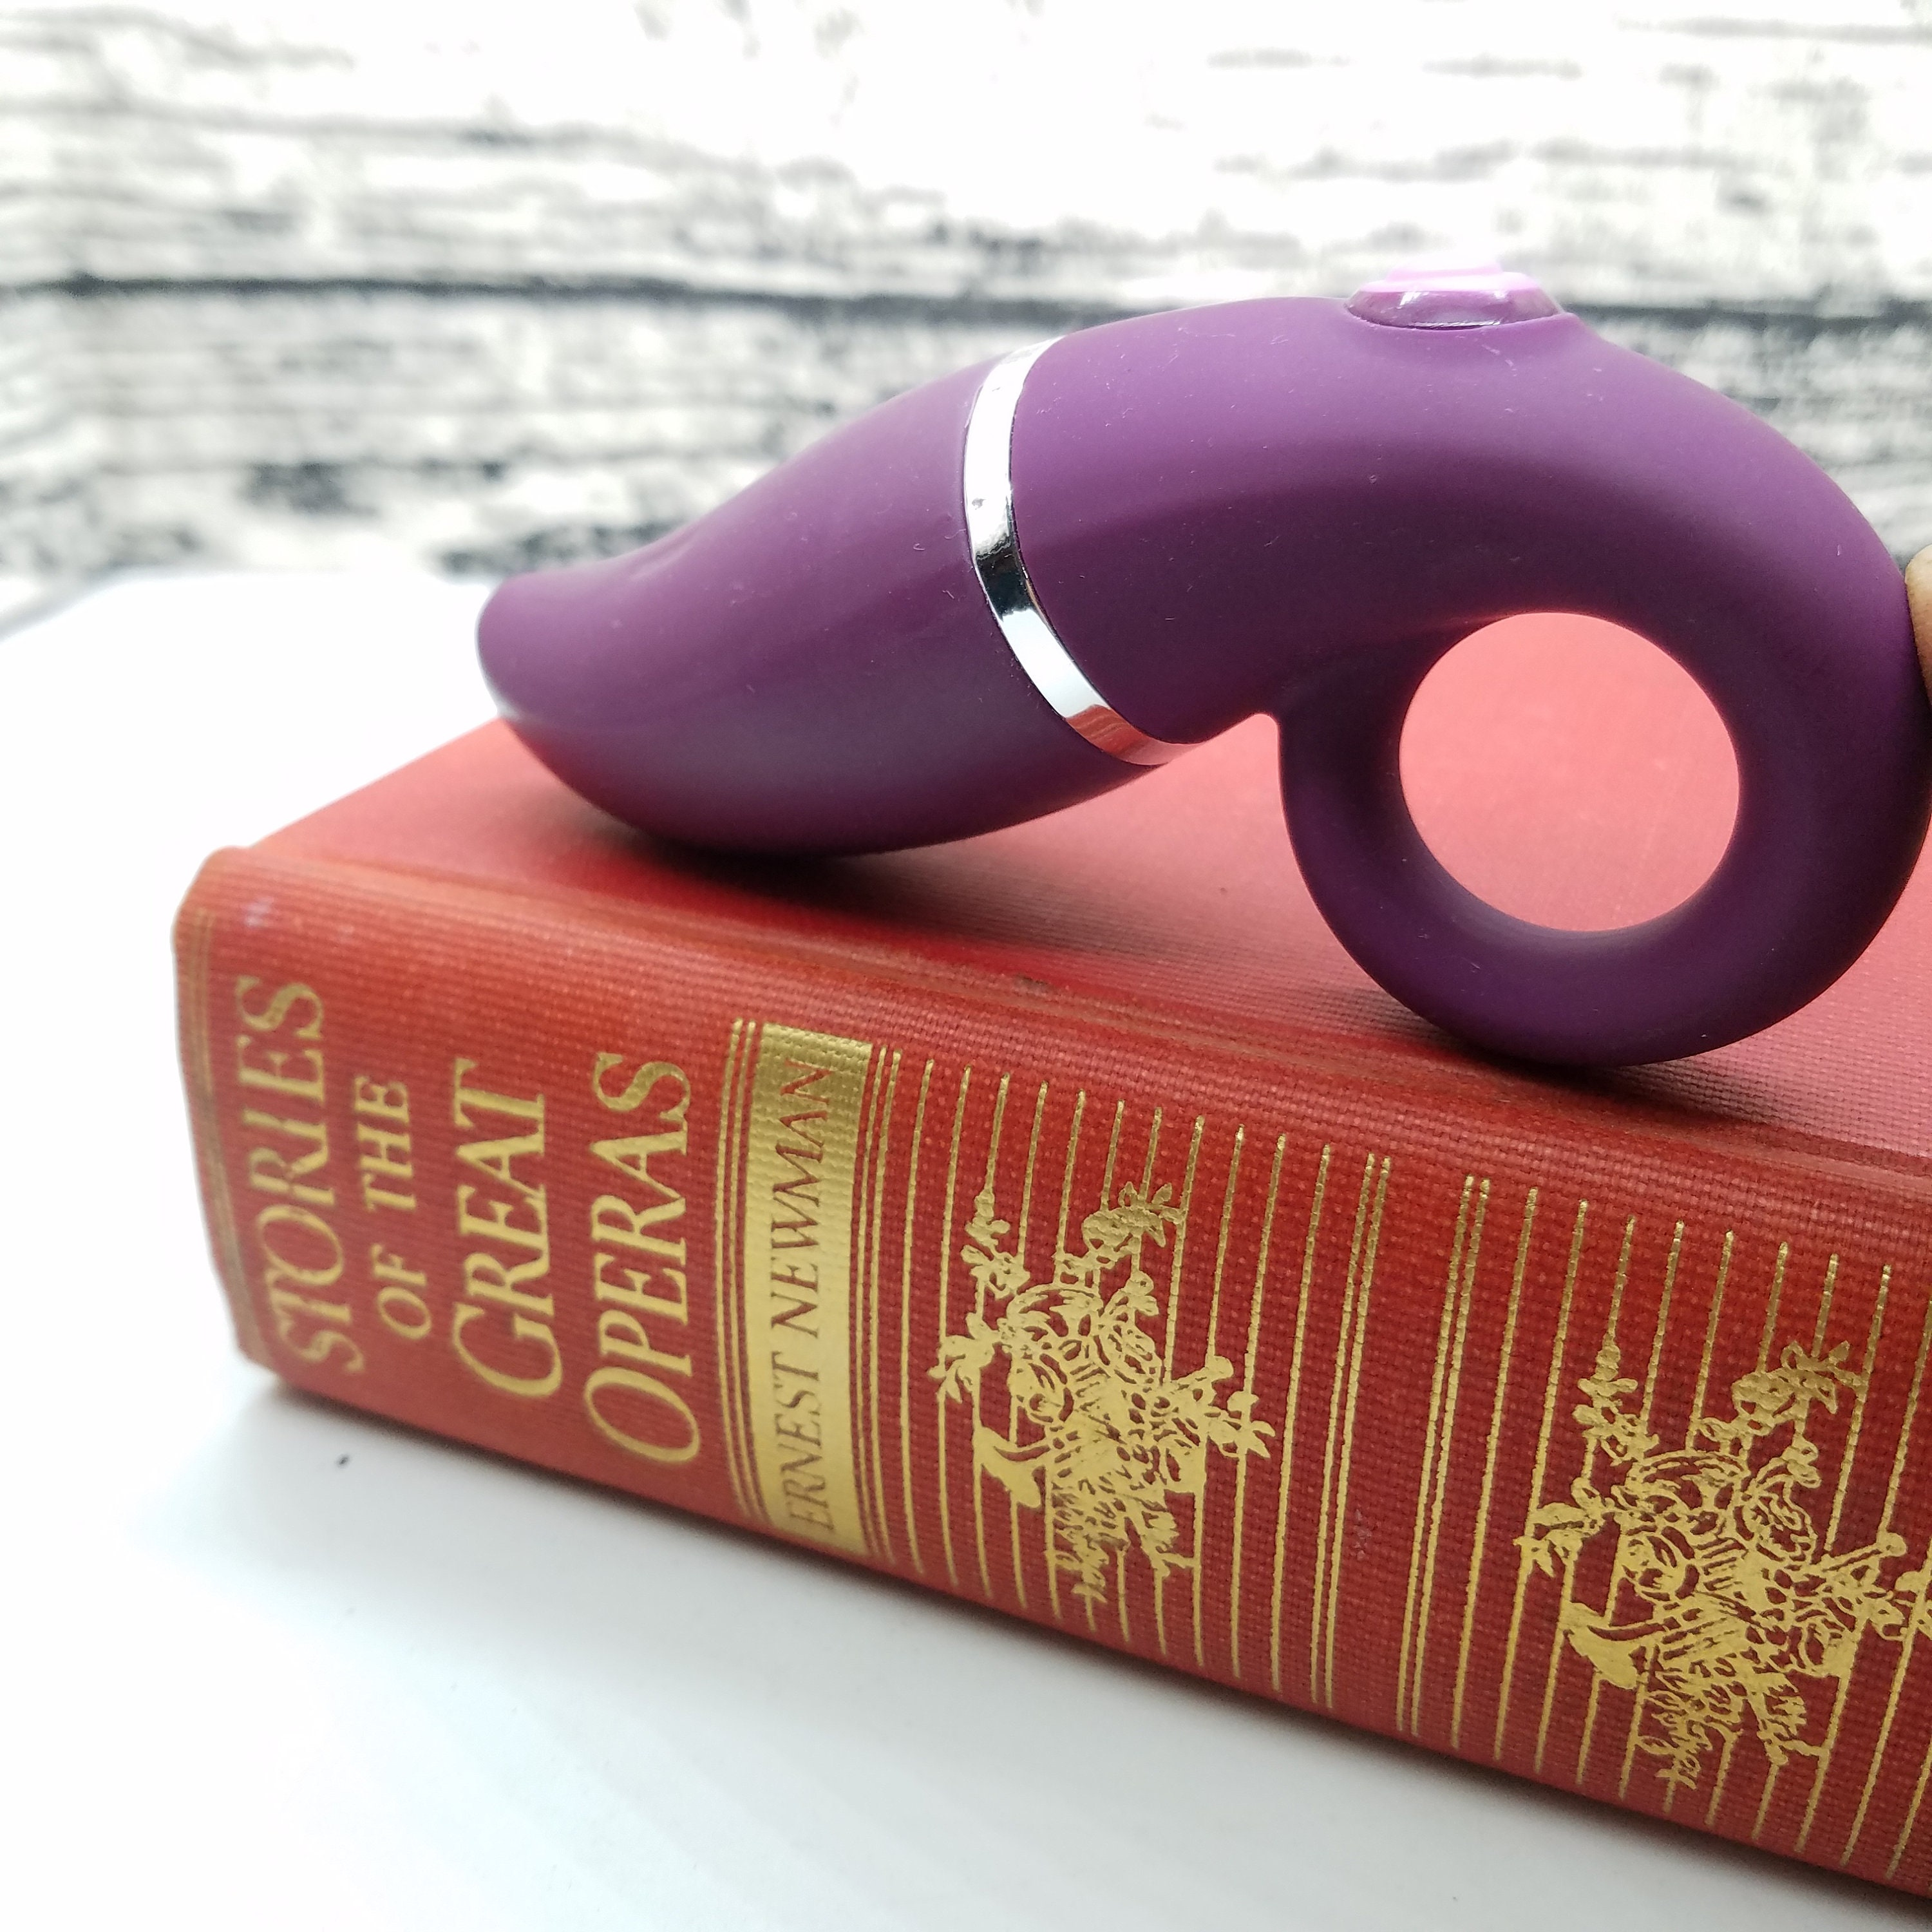 Mature Vibrator Hollow Book Safe Stories of Great Operas Luxe   Etsy